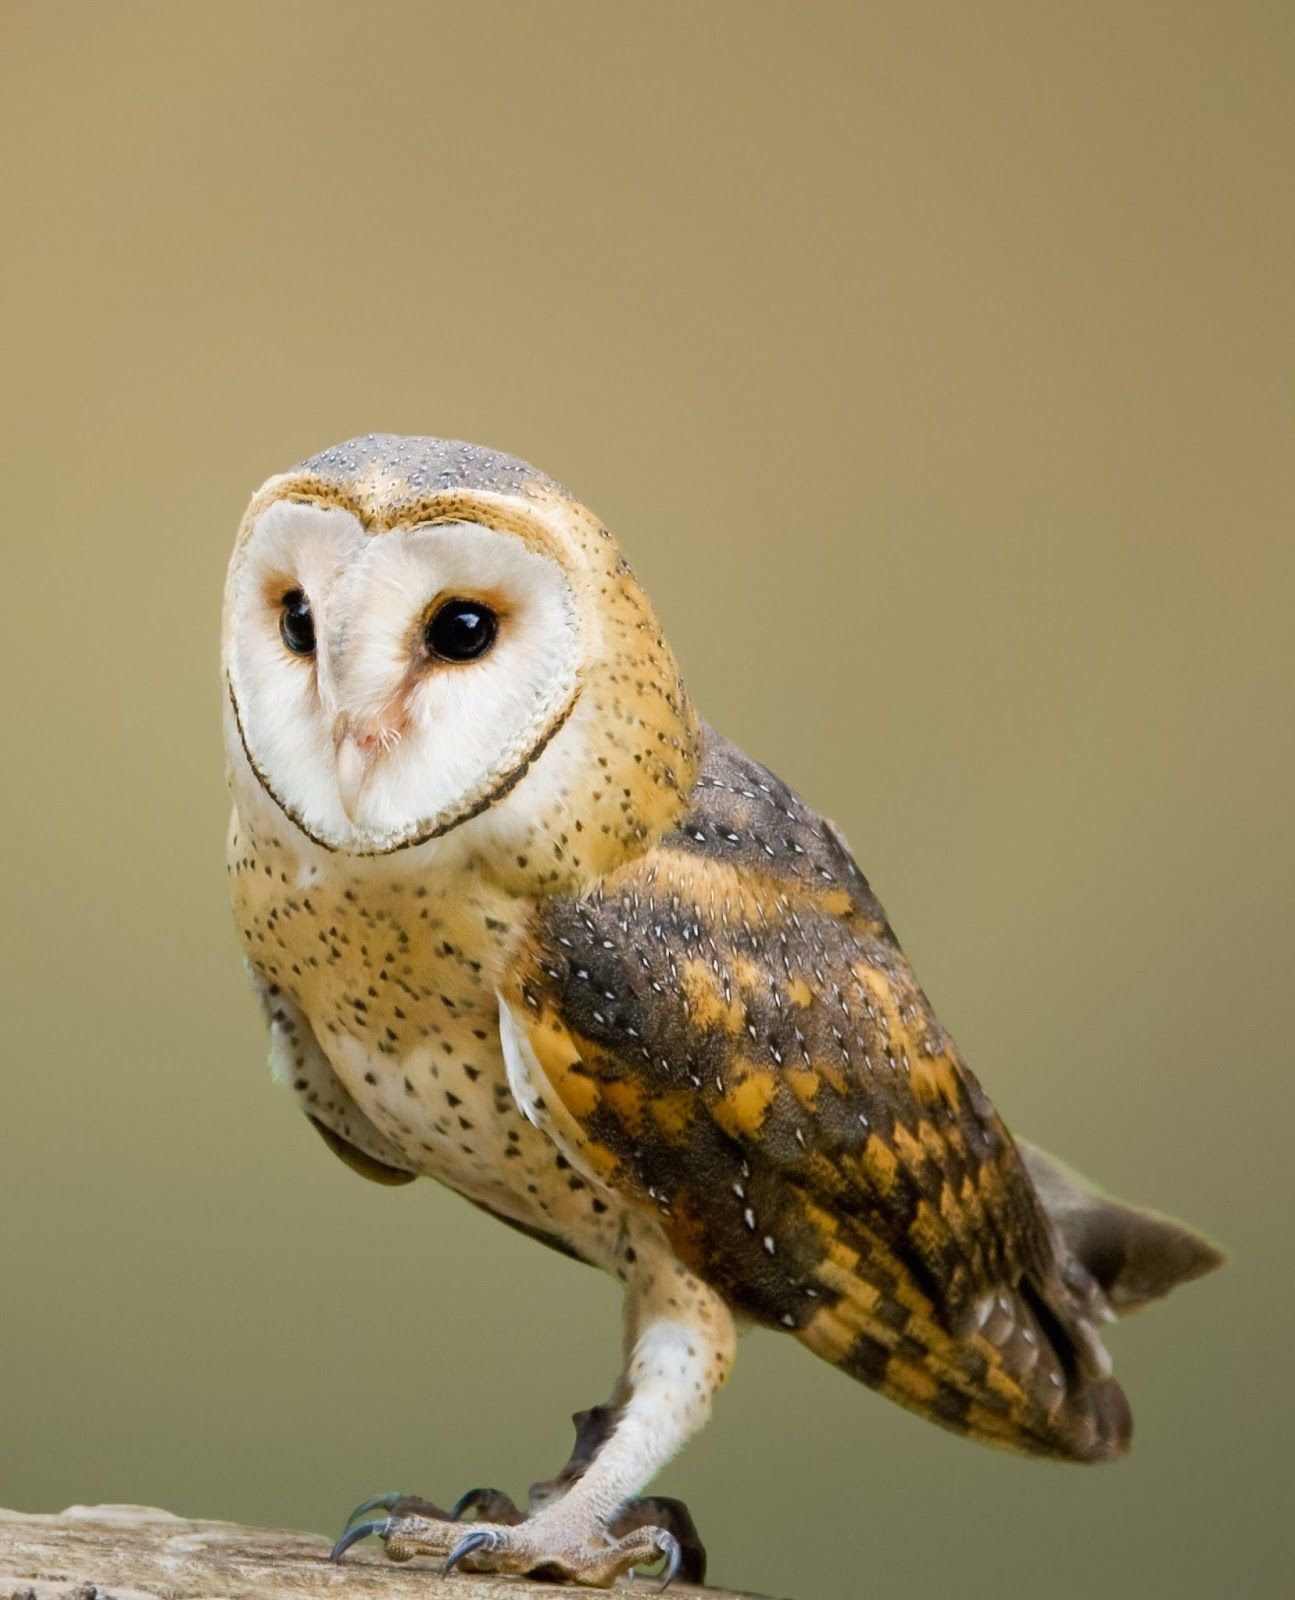 Tawny Owl Picture Of Barn Owl Pinterest Amazing Barn Owl Nocturnal Facts Birds Owl Animals Birds